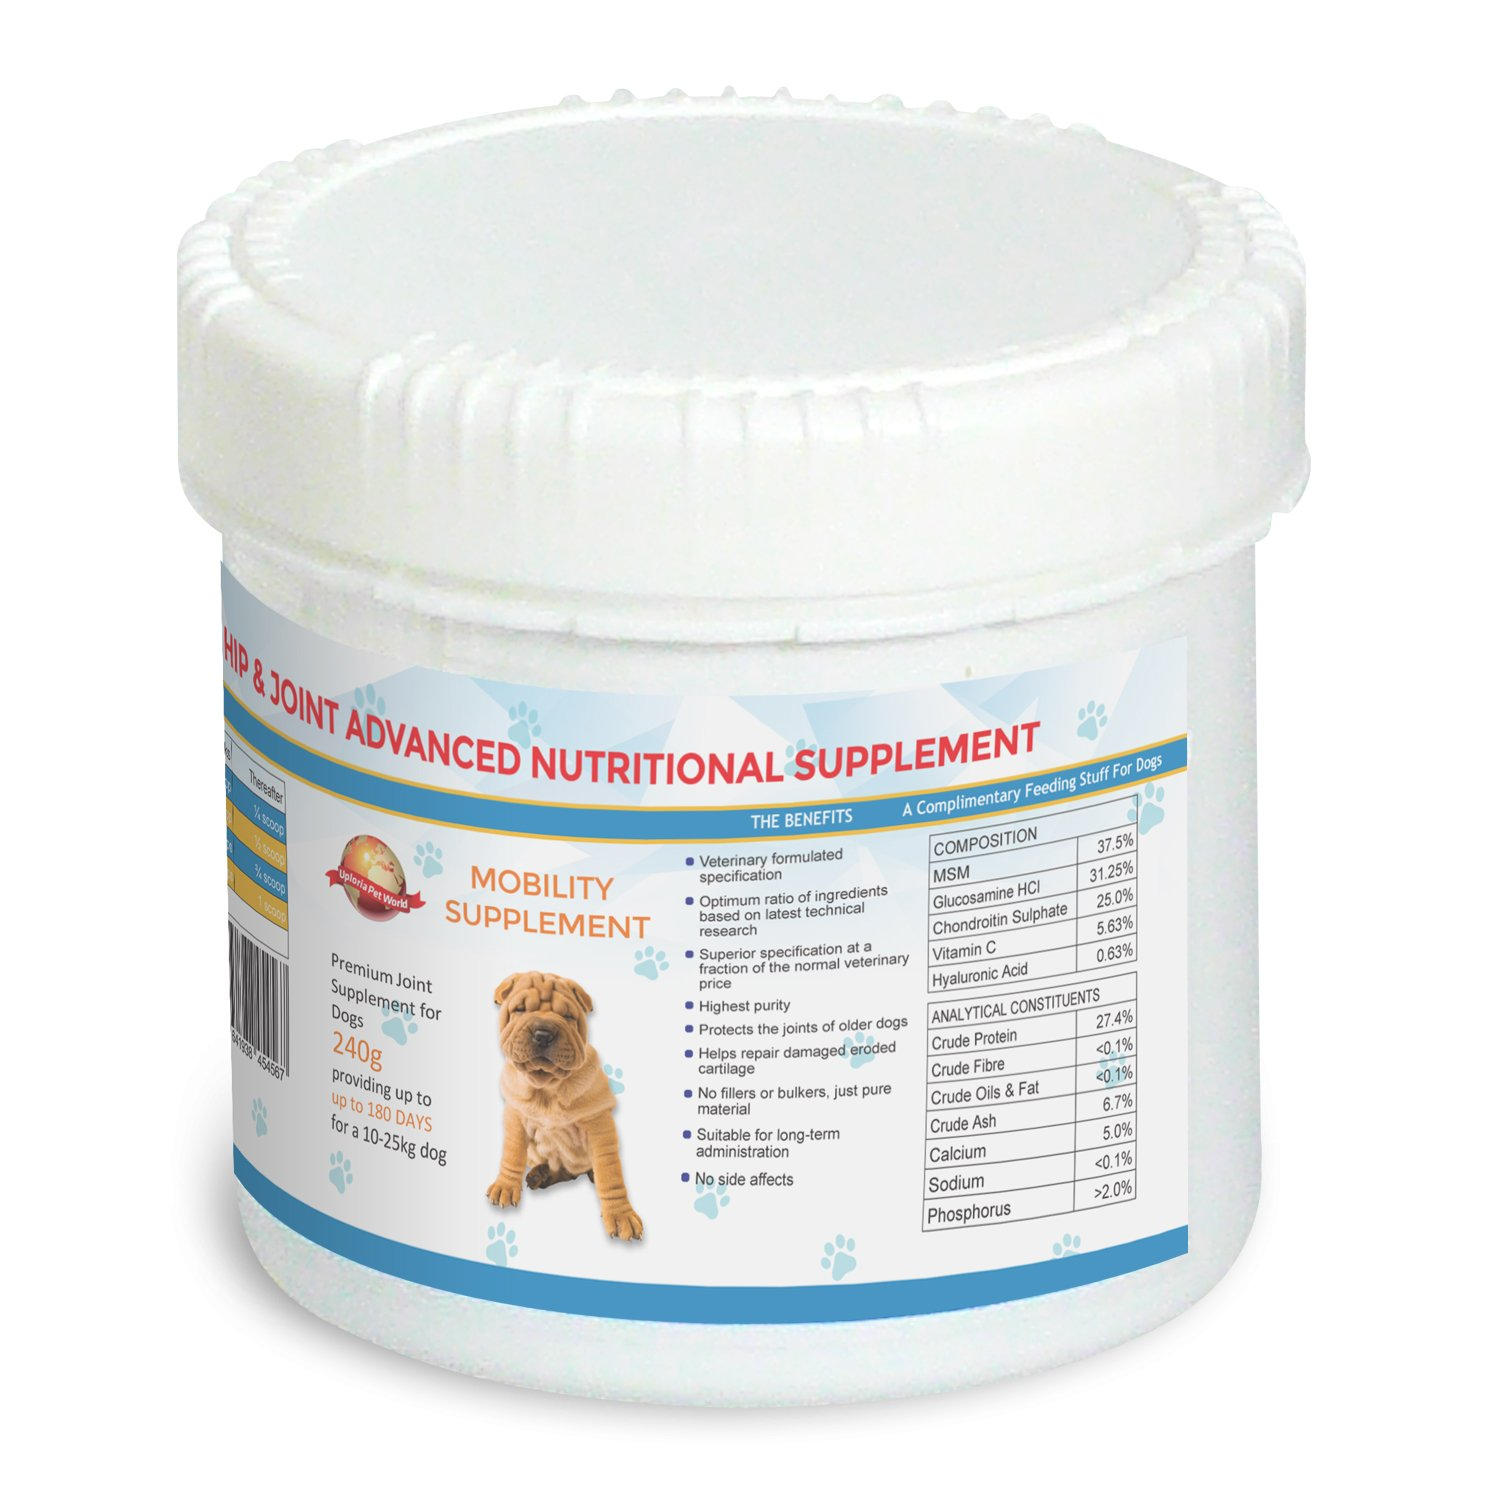 Joint Supplements For Dogs – 180 DAYS For A 10 – 25 kg Dog | Veterinary Formulated Premium Supplement That Relieves Joint Pain & Improves Mobility | Glucosamine Chondroitin MSM |UK Manufactured…